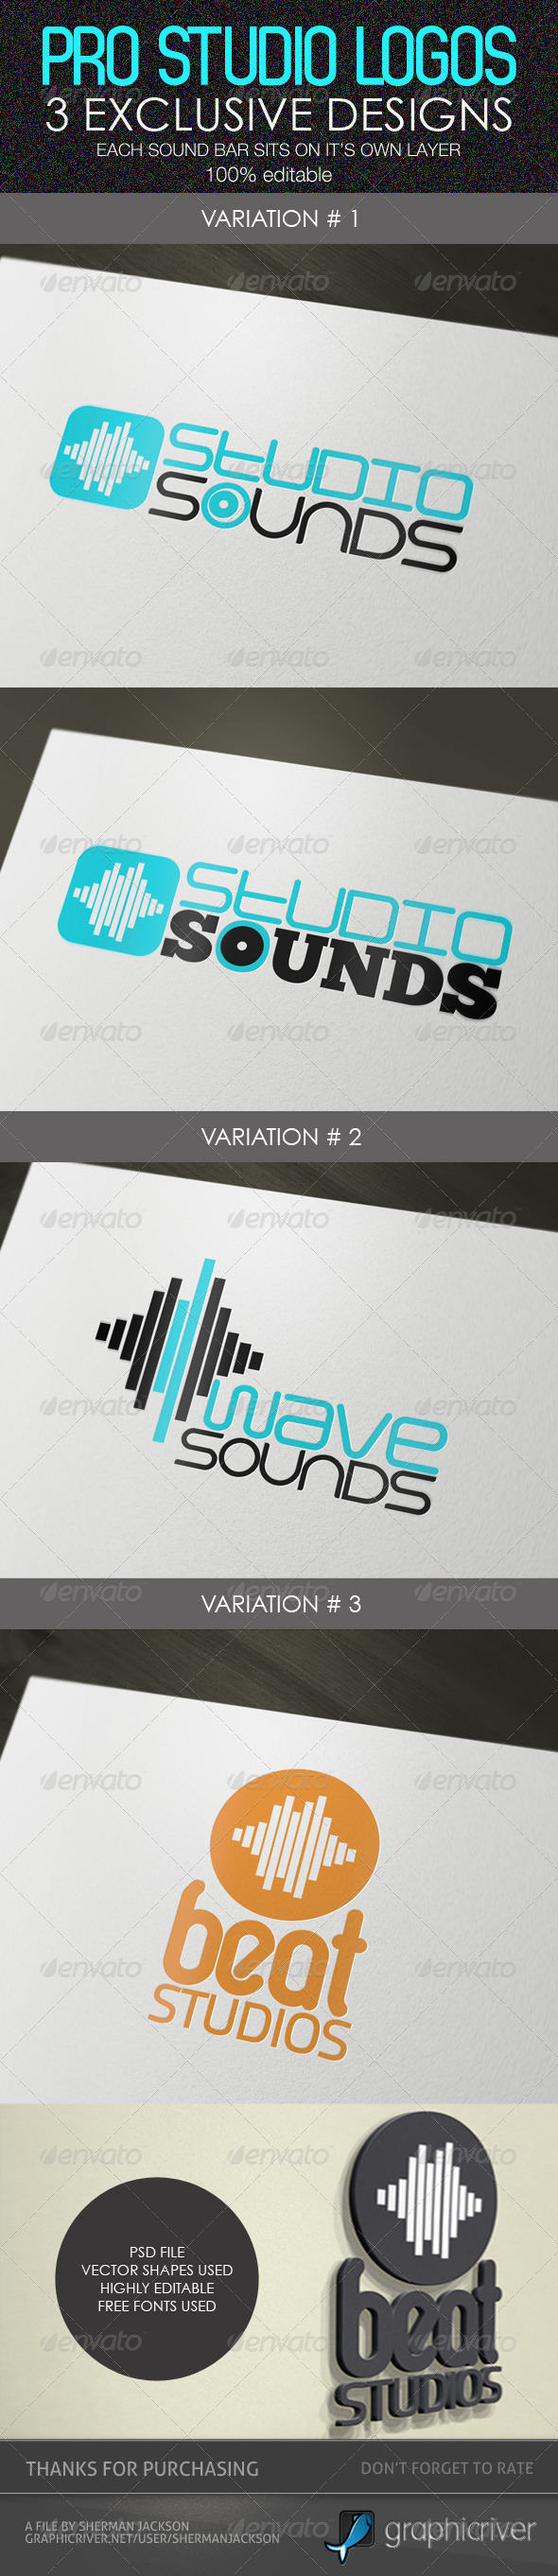 Pro Studio Logos - Abstract Logo Templates